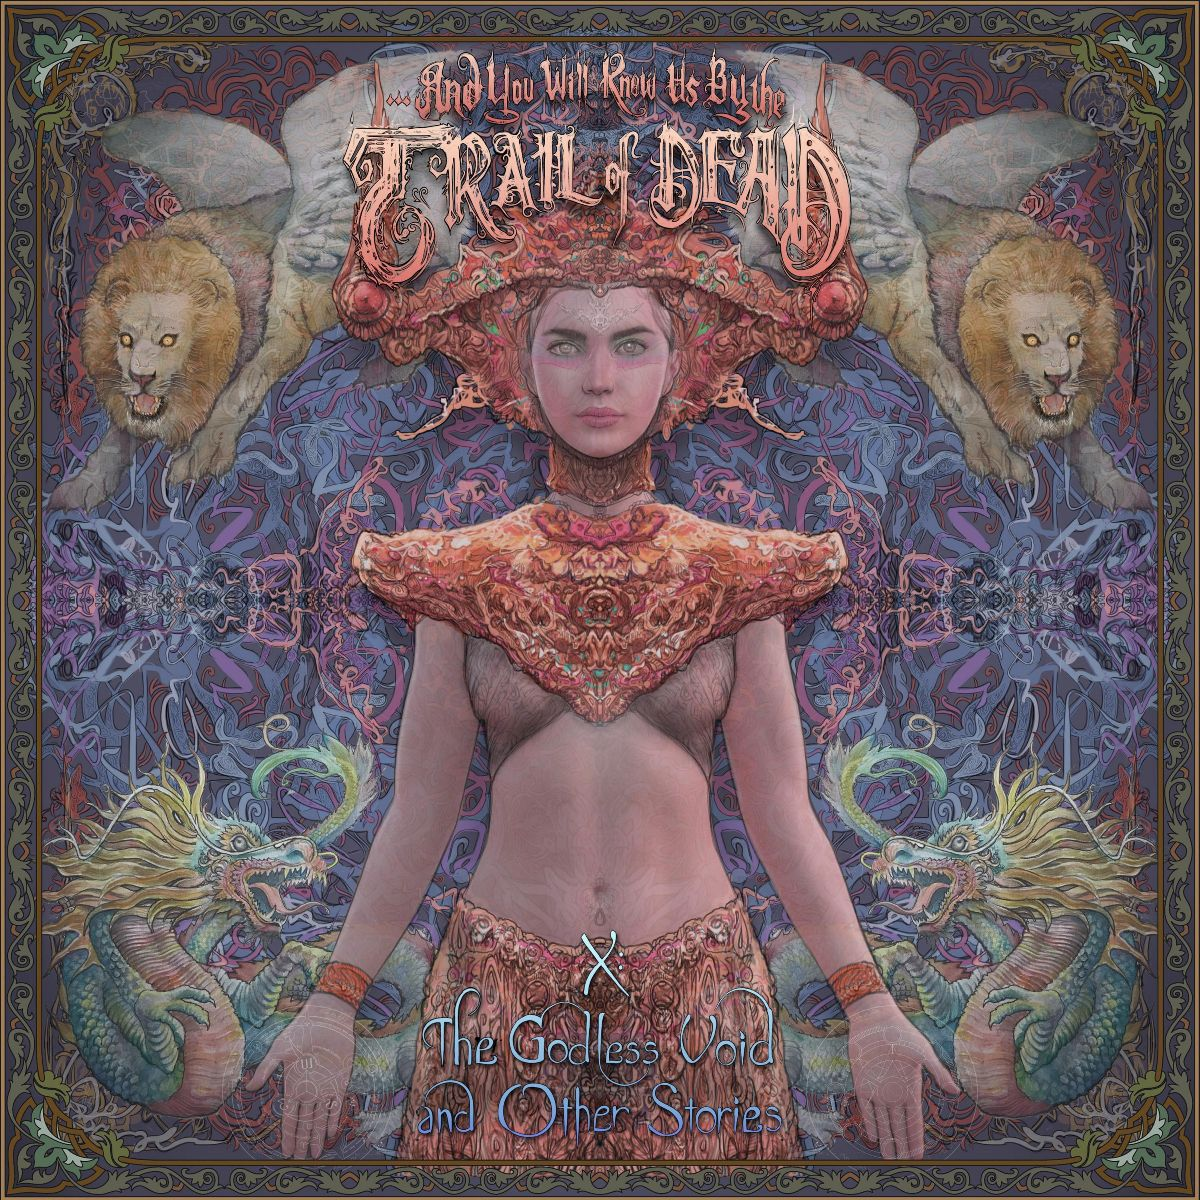 and you will know us by the trail of dead godless void cover